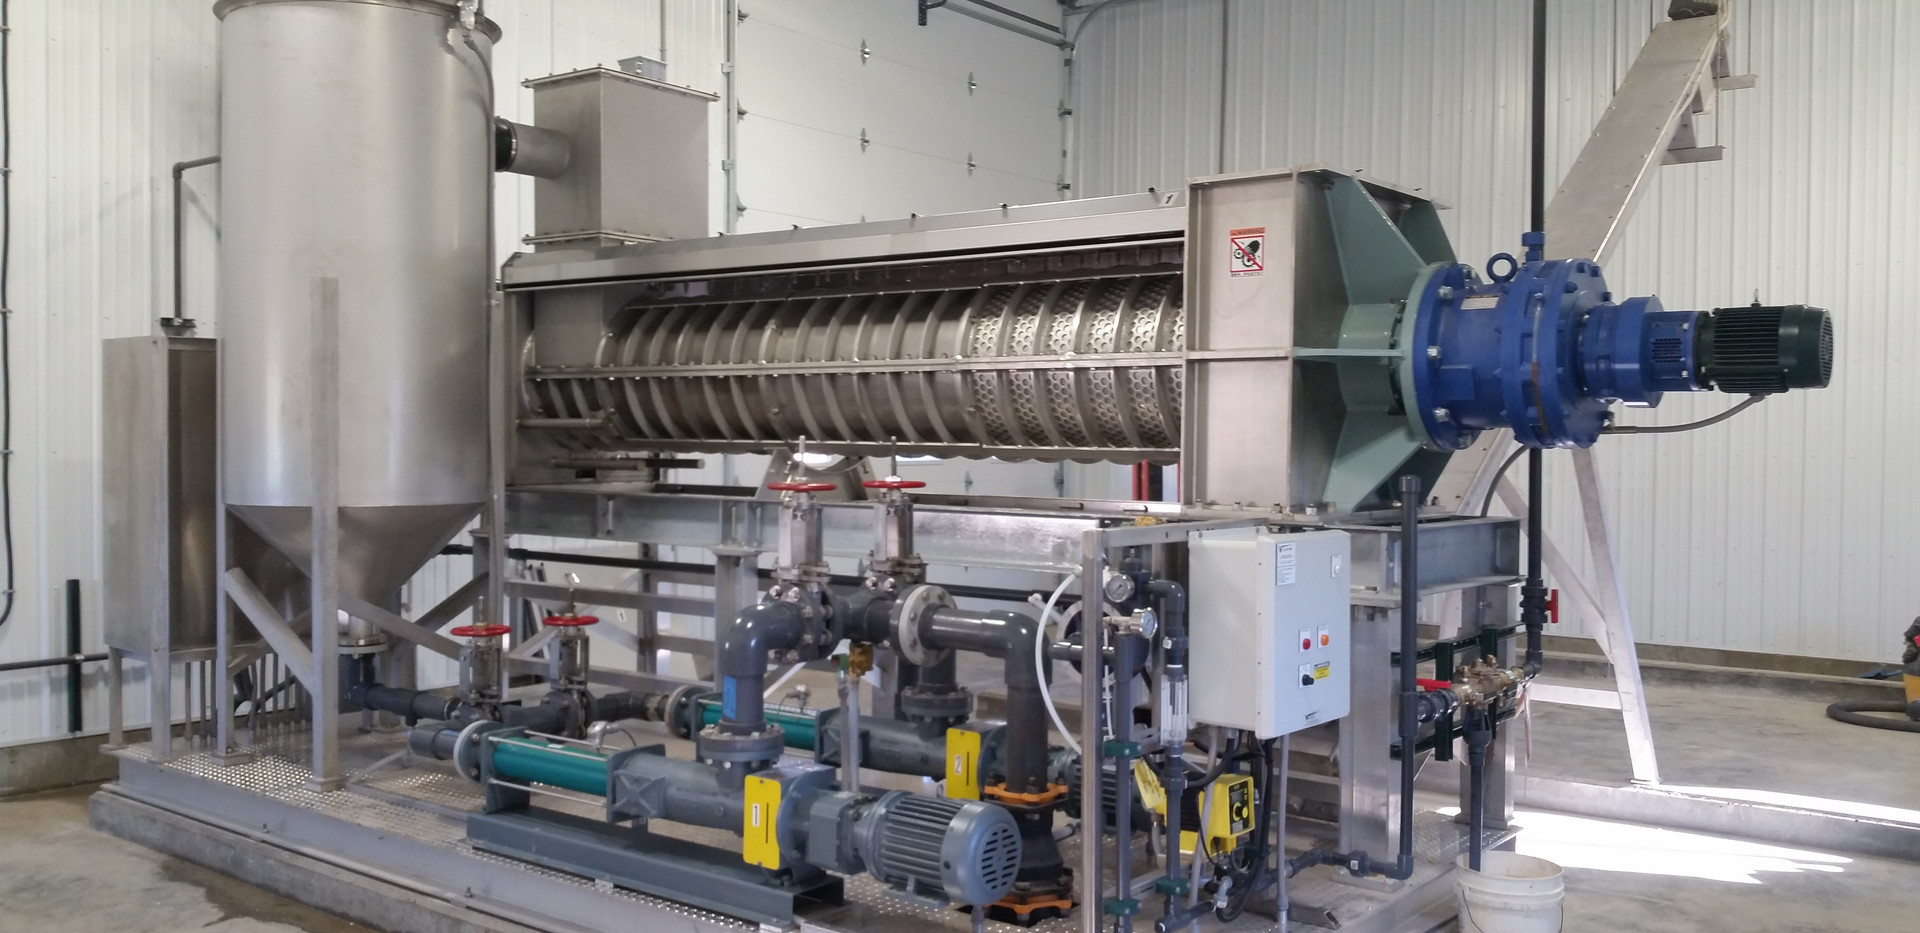 FKC Screw Press Skid - Paris IL.jpg